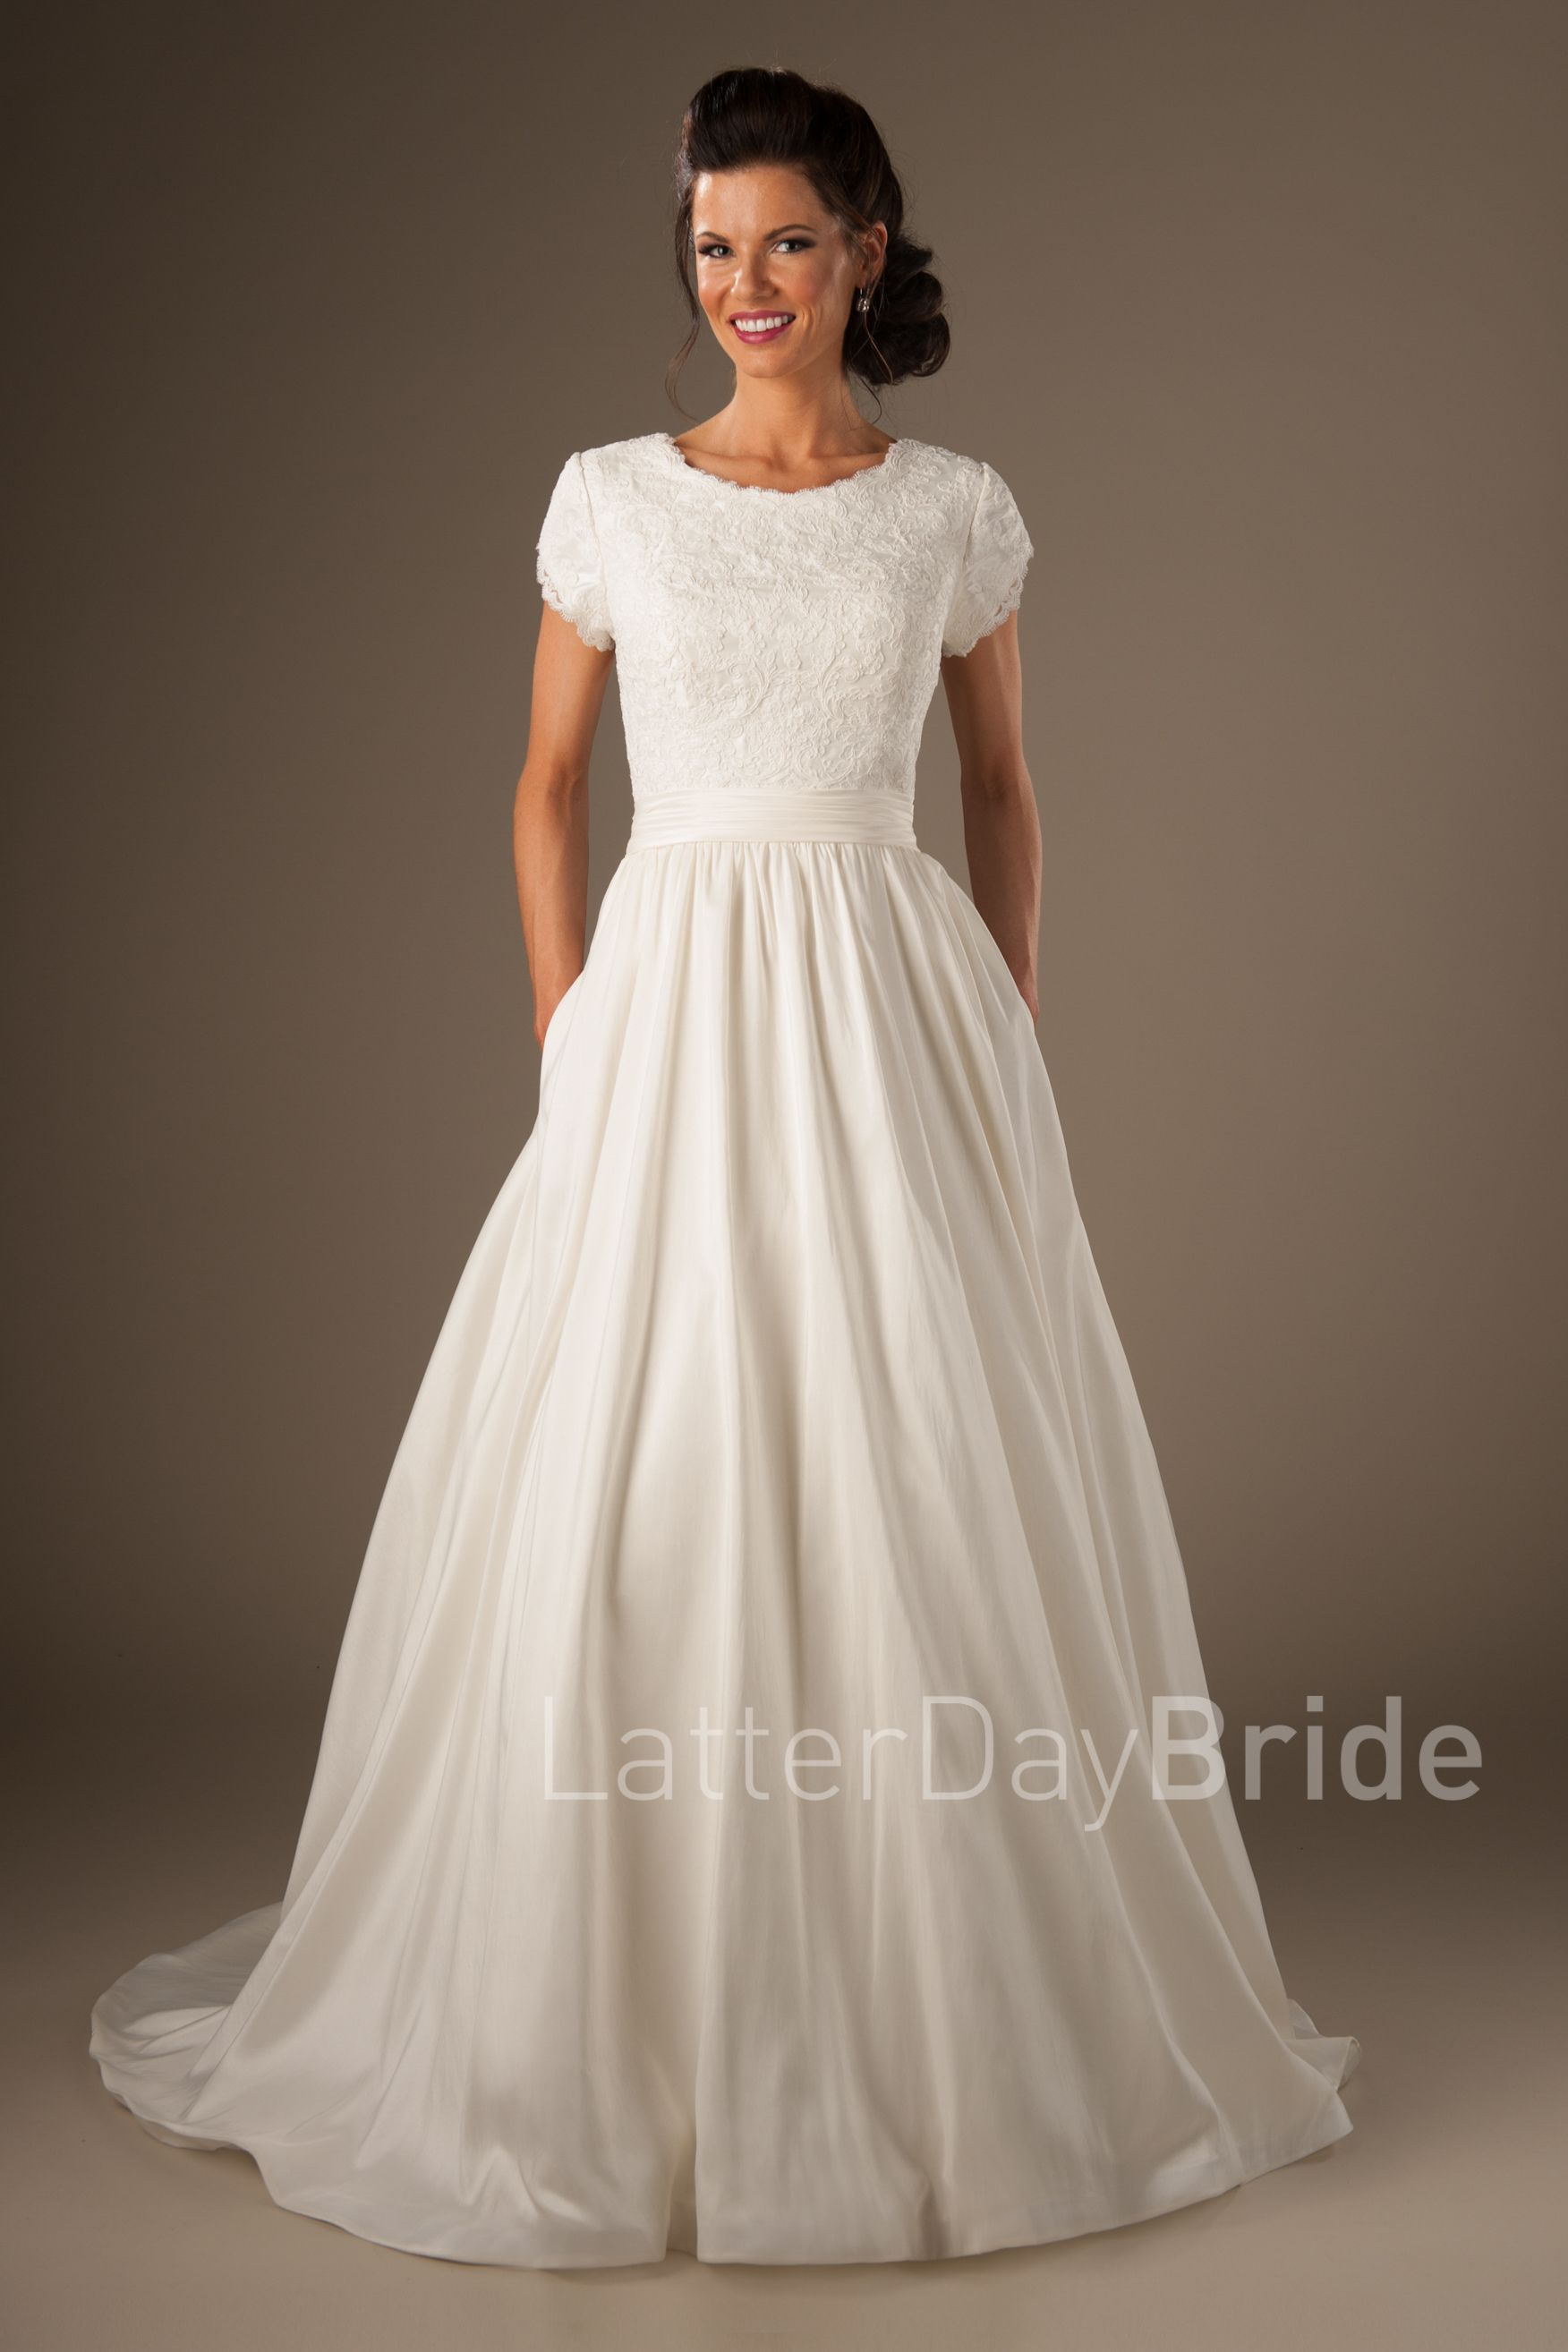 Plus size wedding dresses castleford - We Ve Combined Your Favorite Modest Wedding Dresses And Created The Joleen Fall Head Over Heels For The Darling Lace Top Cinched Taffeta At The Natural